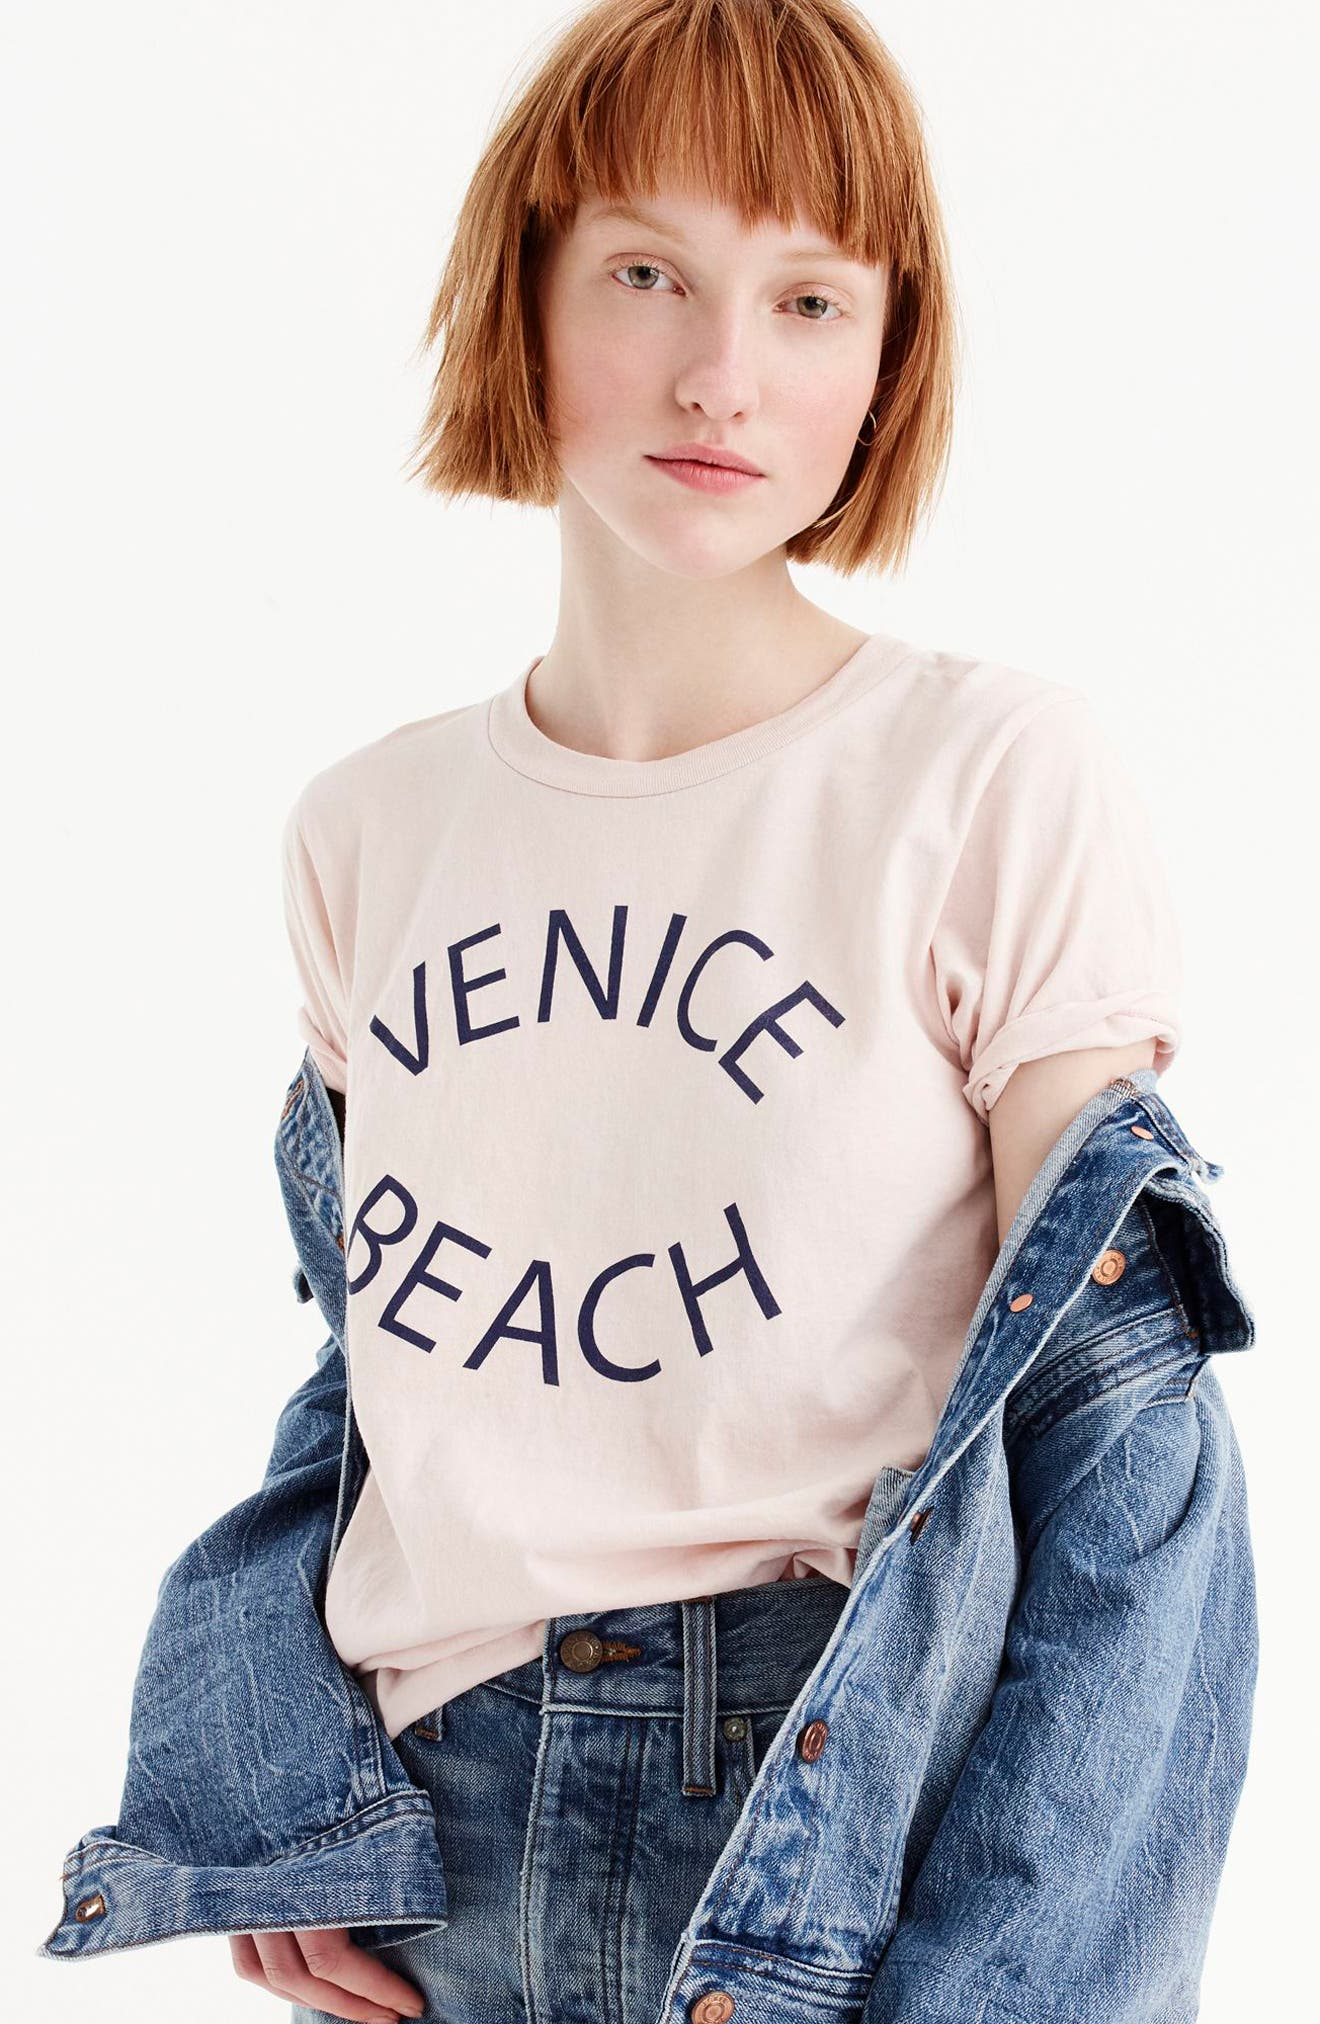 Venice Beach Graphic Tee,                             Alternate thumbnail 2, color,                             650